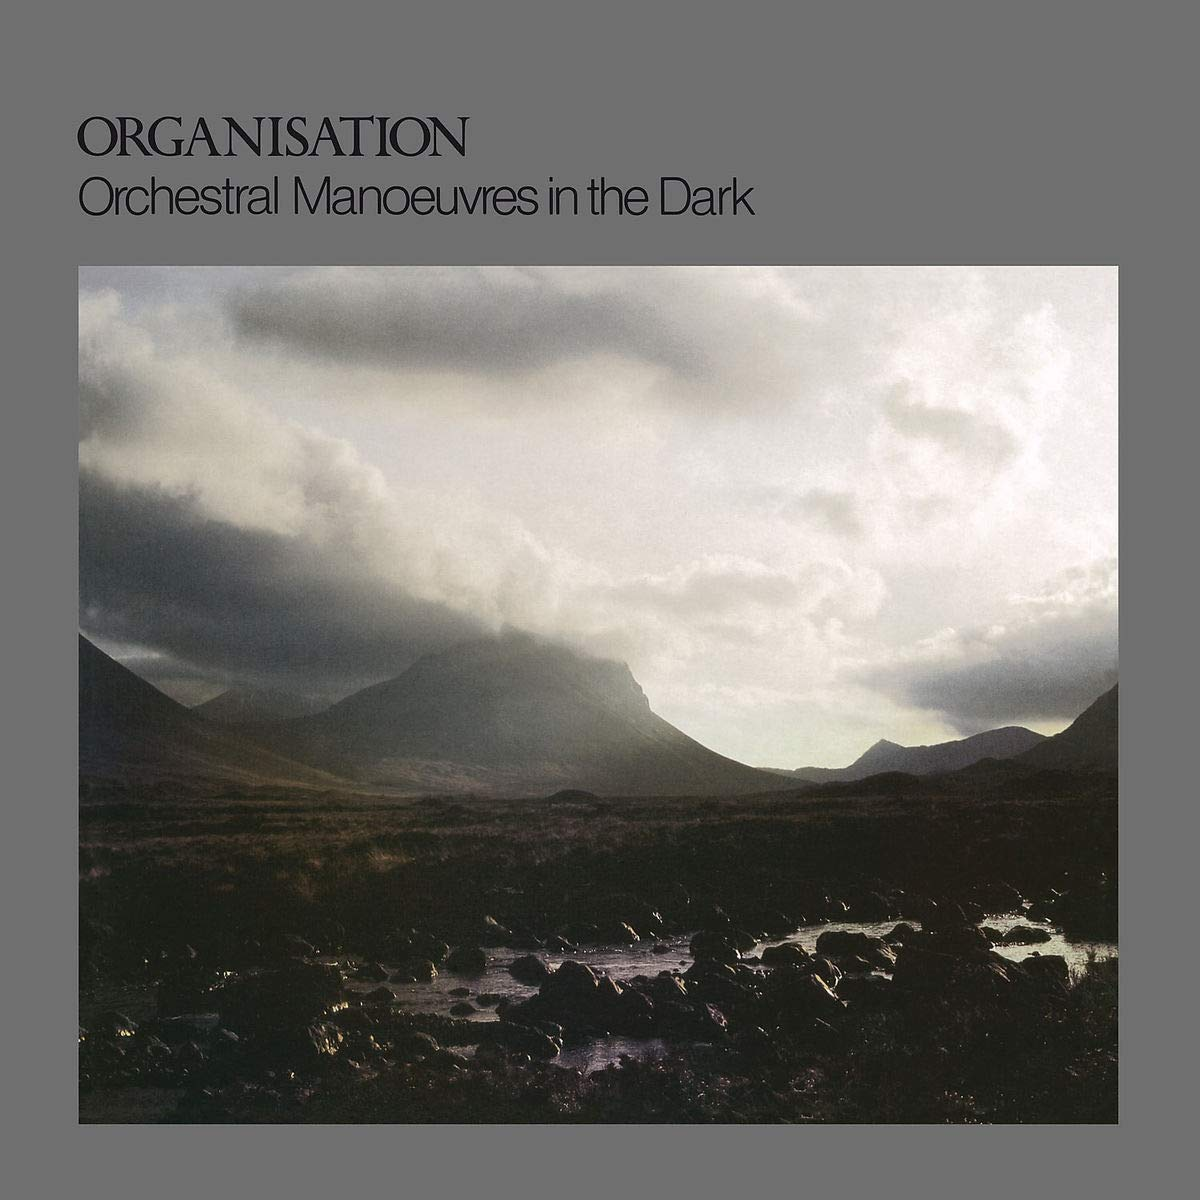 Vinilo : Omd ( Orchestral Manoeuvres in the Dark ) - Organisation (LP Vinyl)